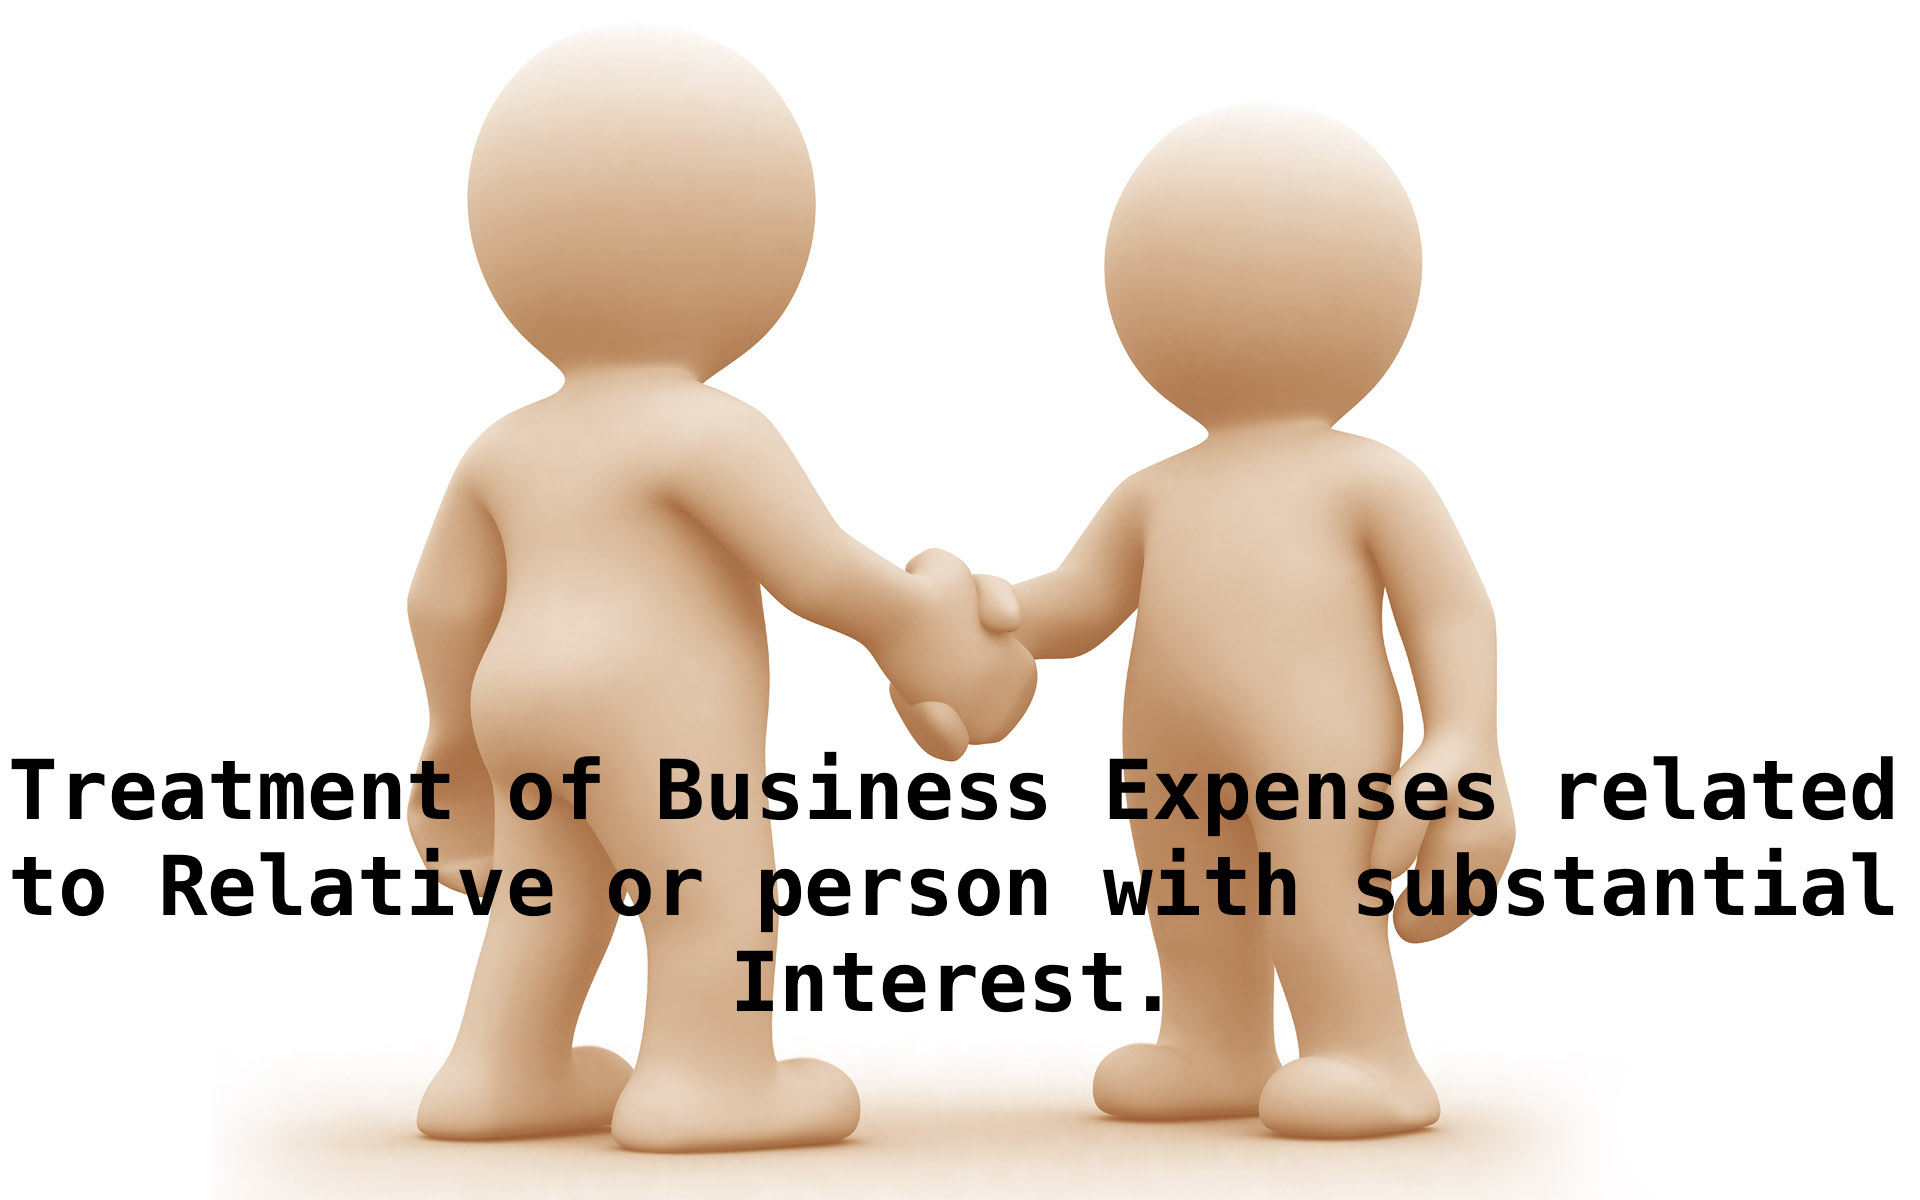 Treatment of Business Expenses related to Relative or person with substantial Interest.